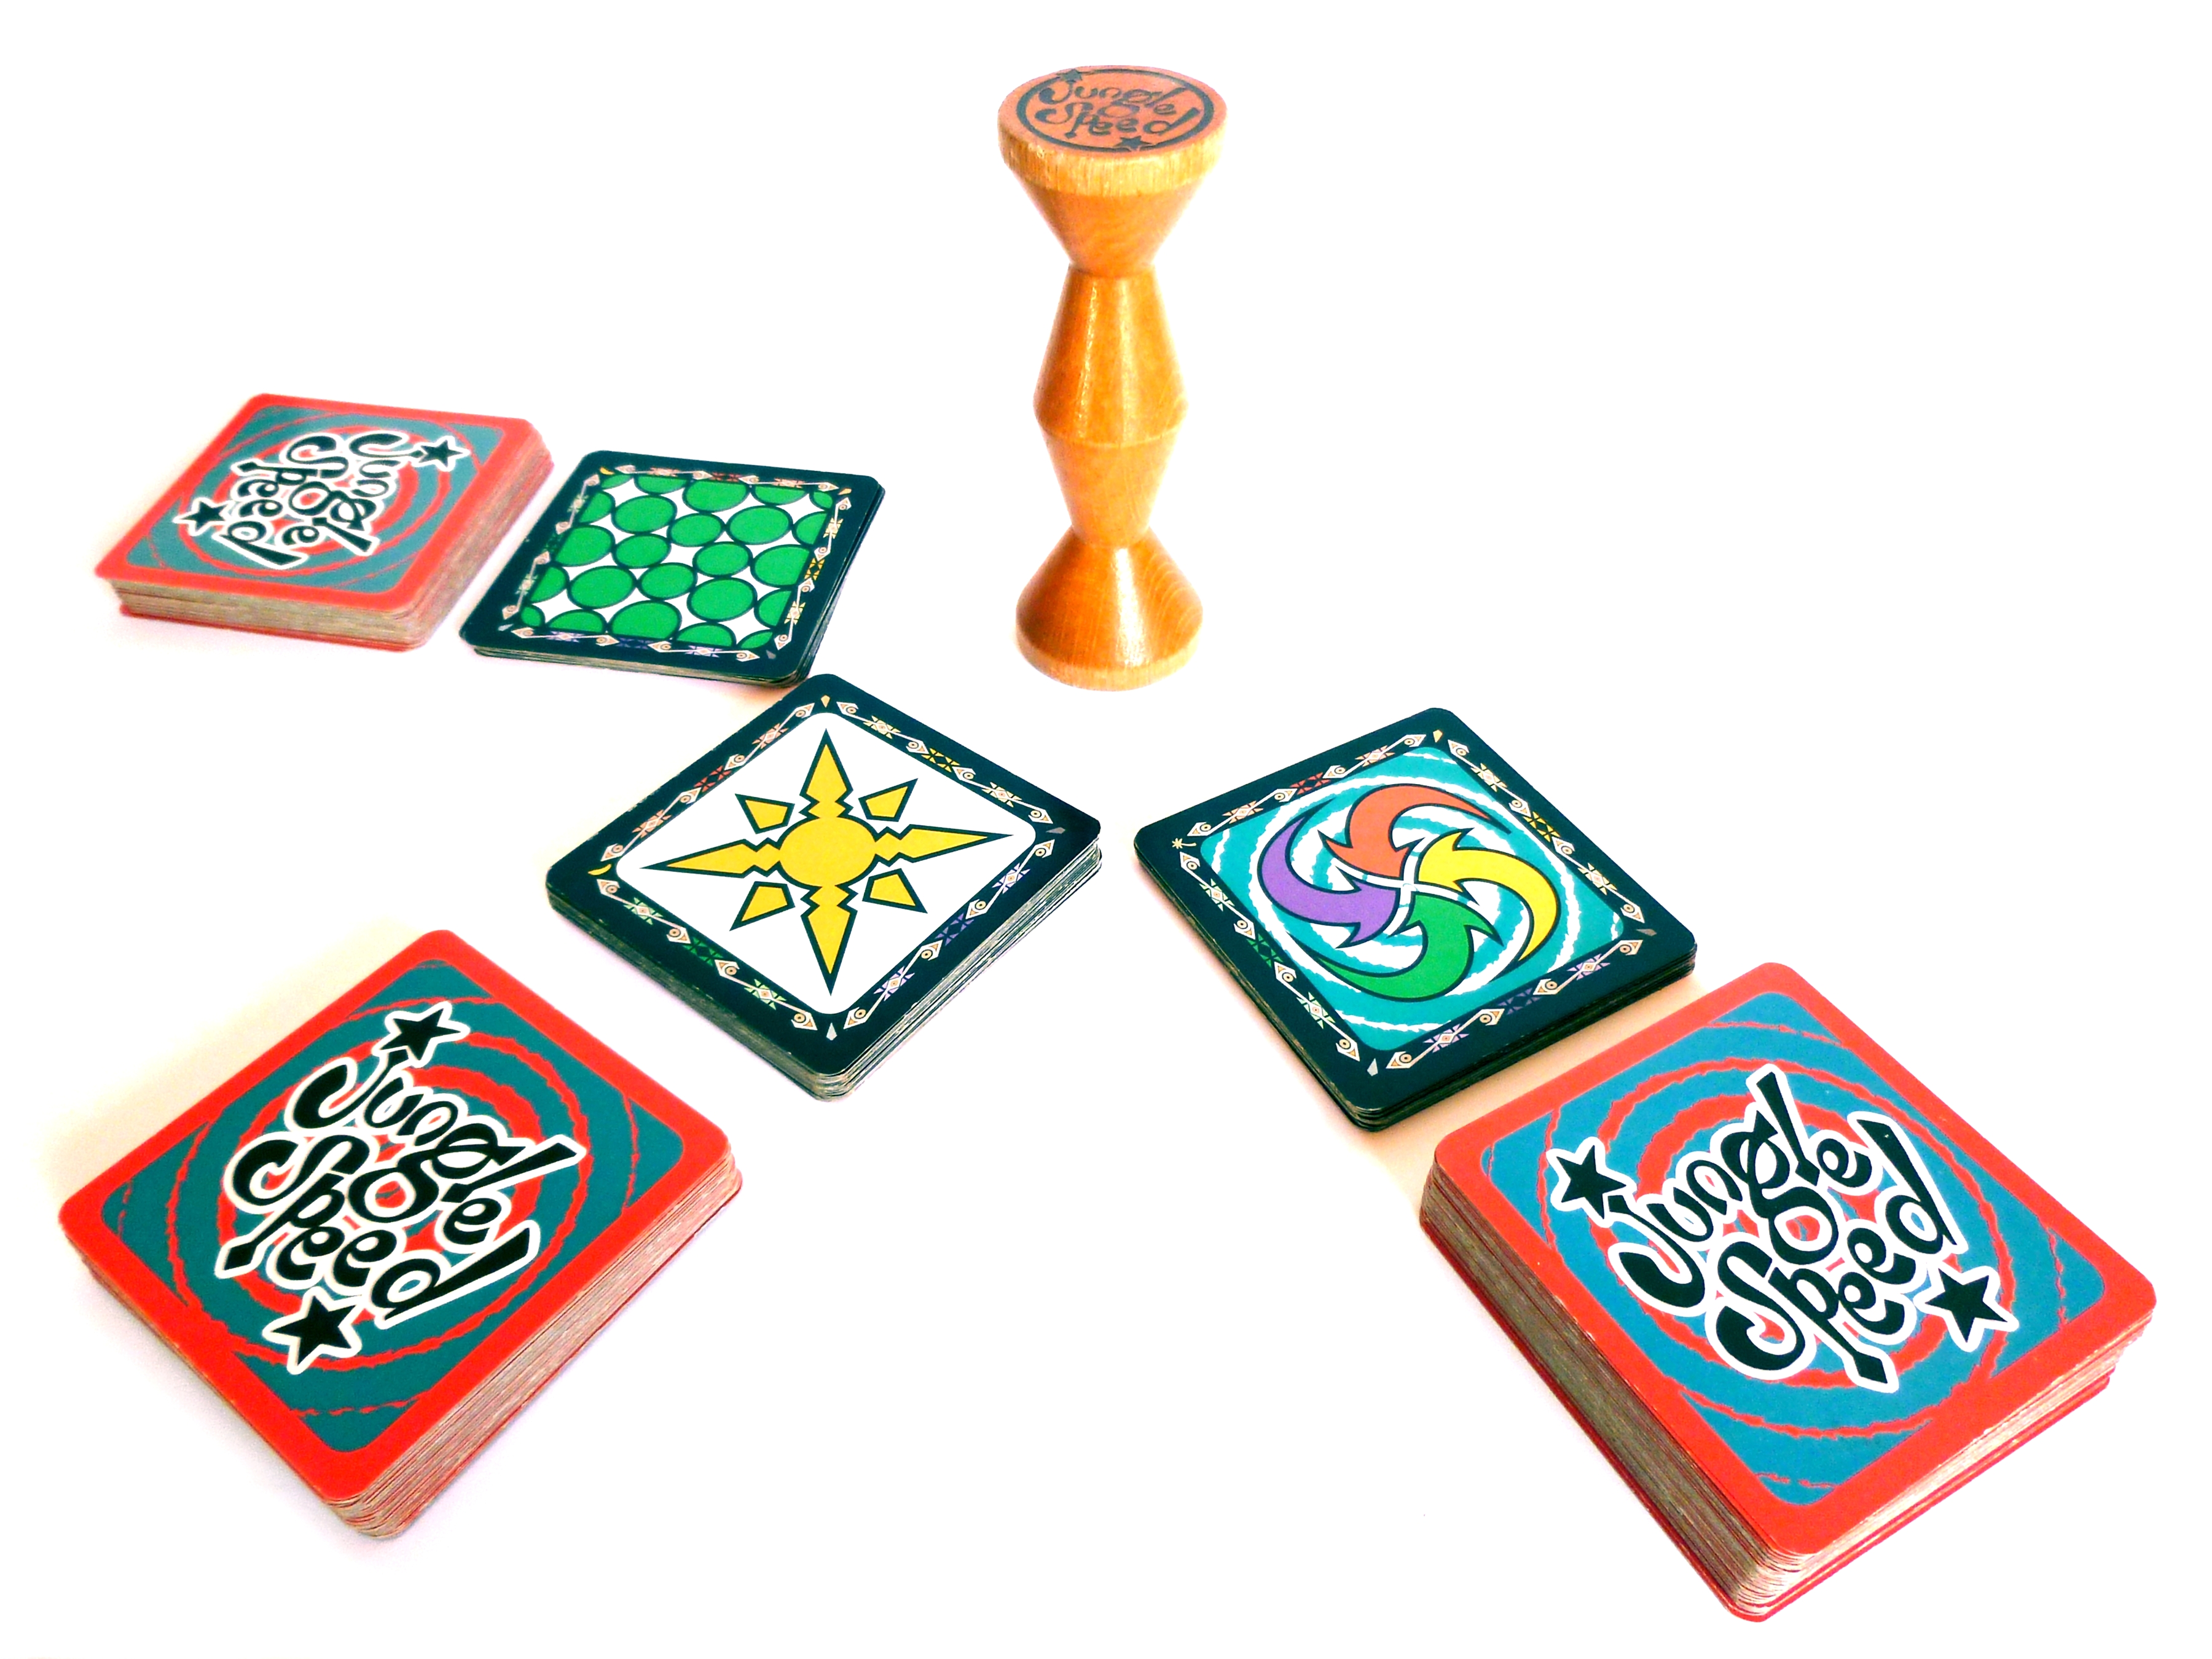 Jungle speed wikiwand for Juego de mesa jungle speed